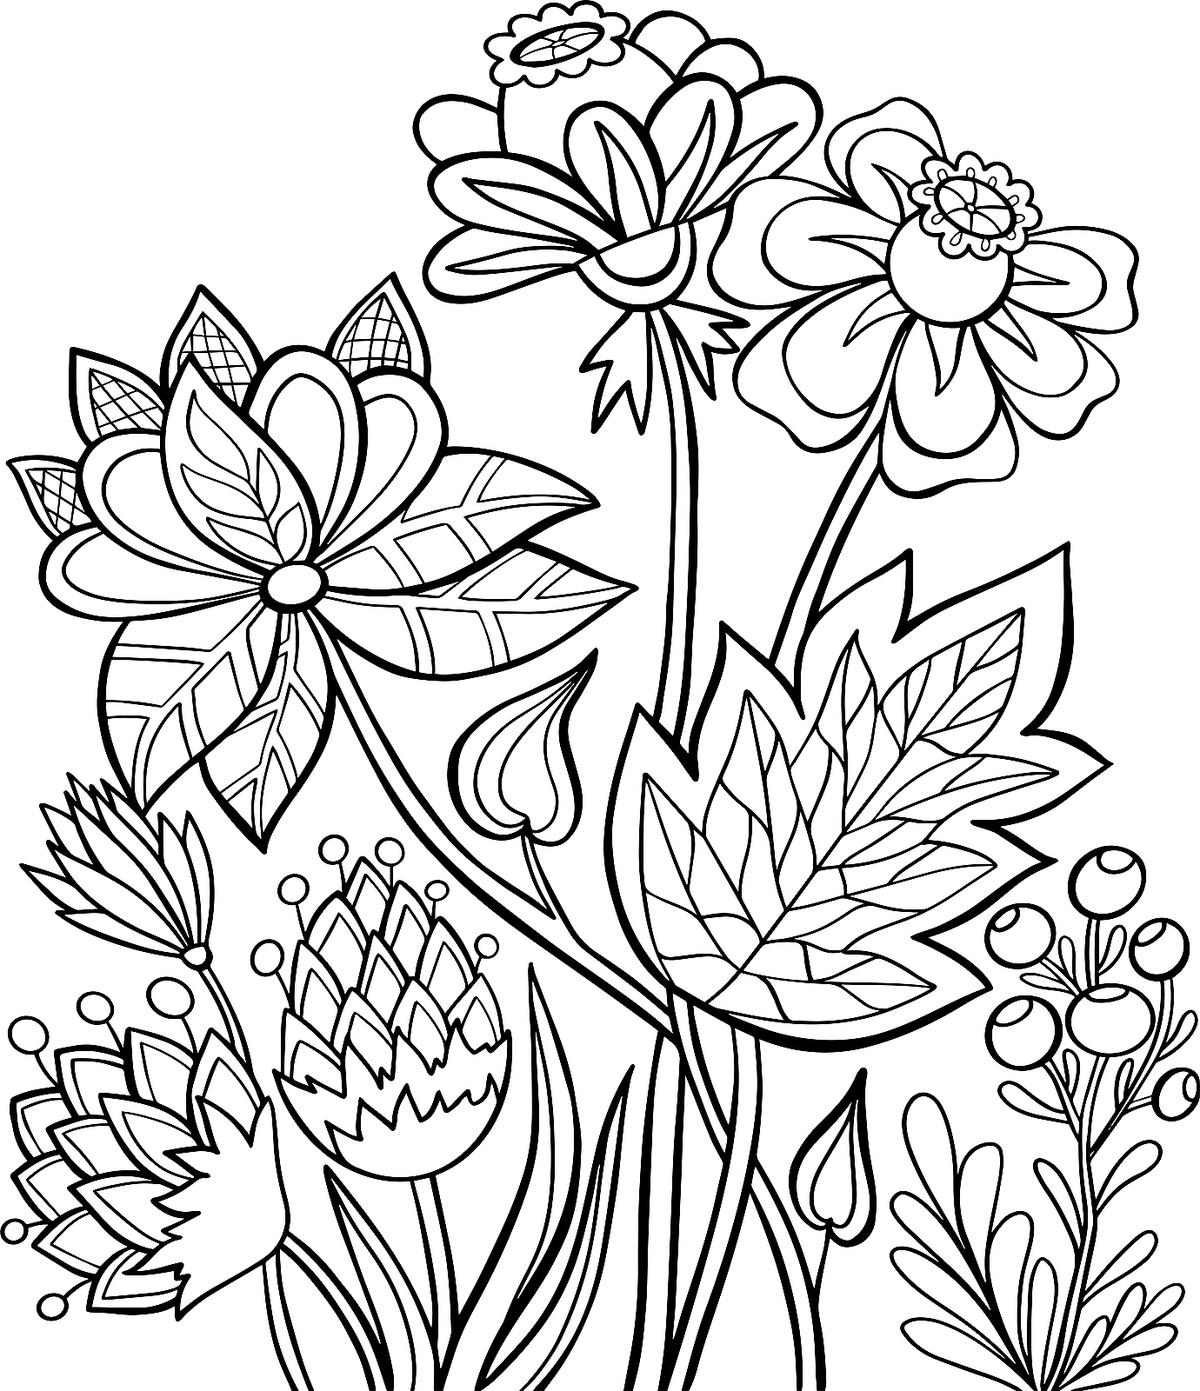 coloring pages flowers printable free printable flower coloring pages for kids best coloring pages flowers printable